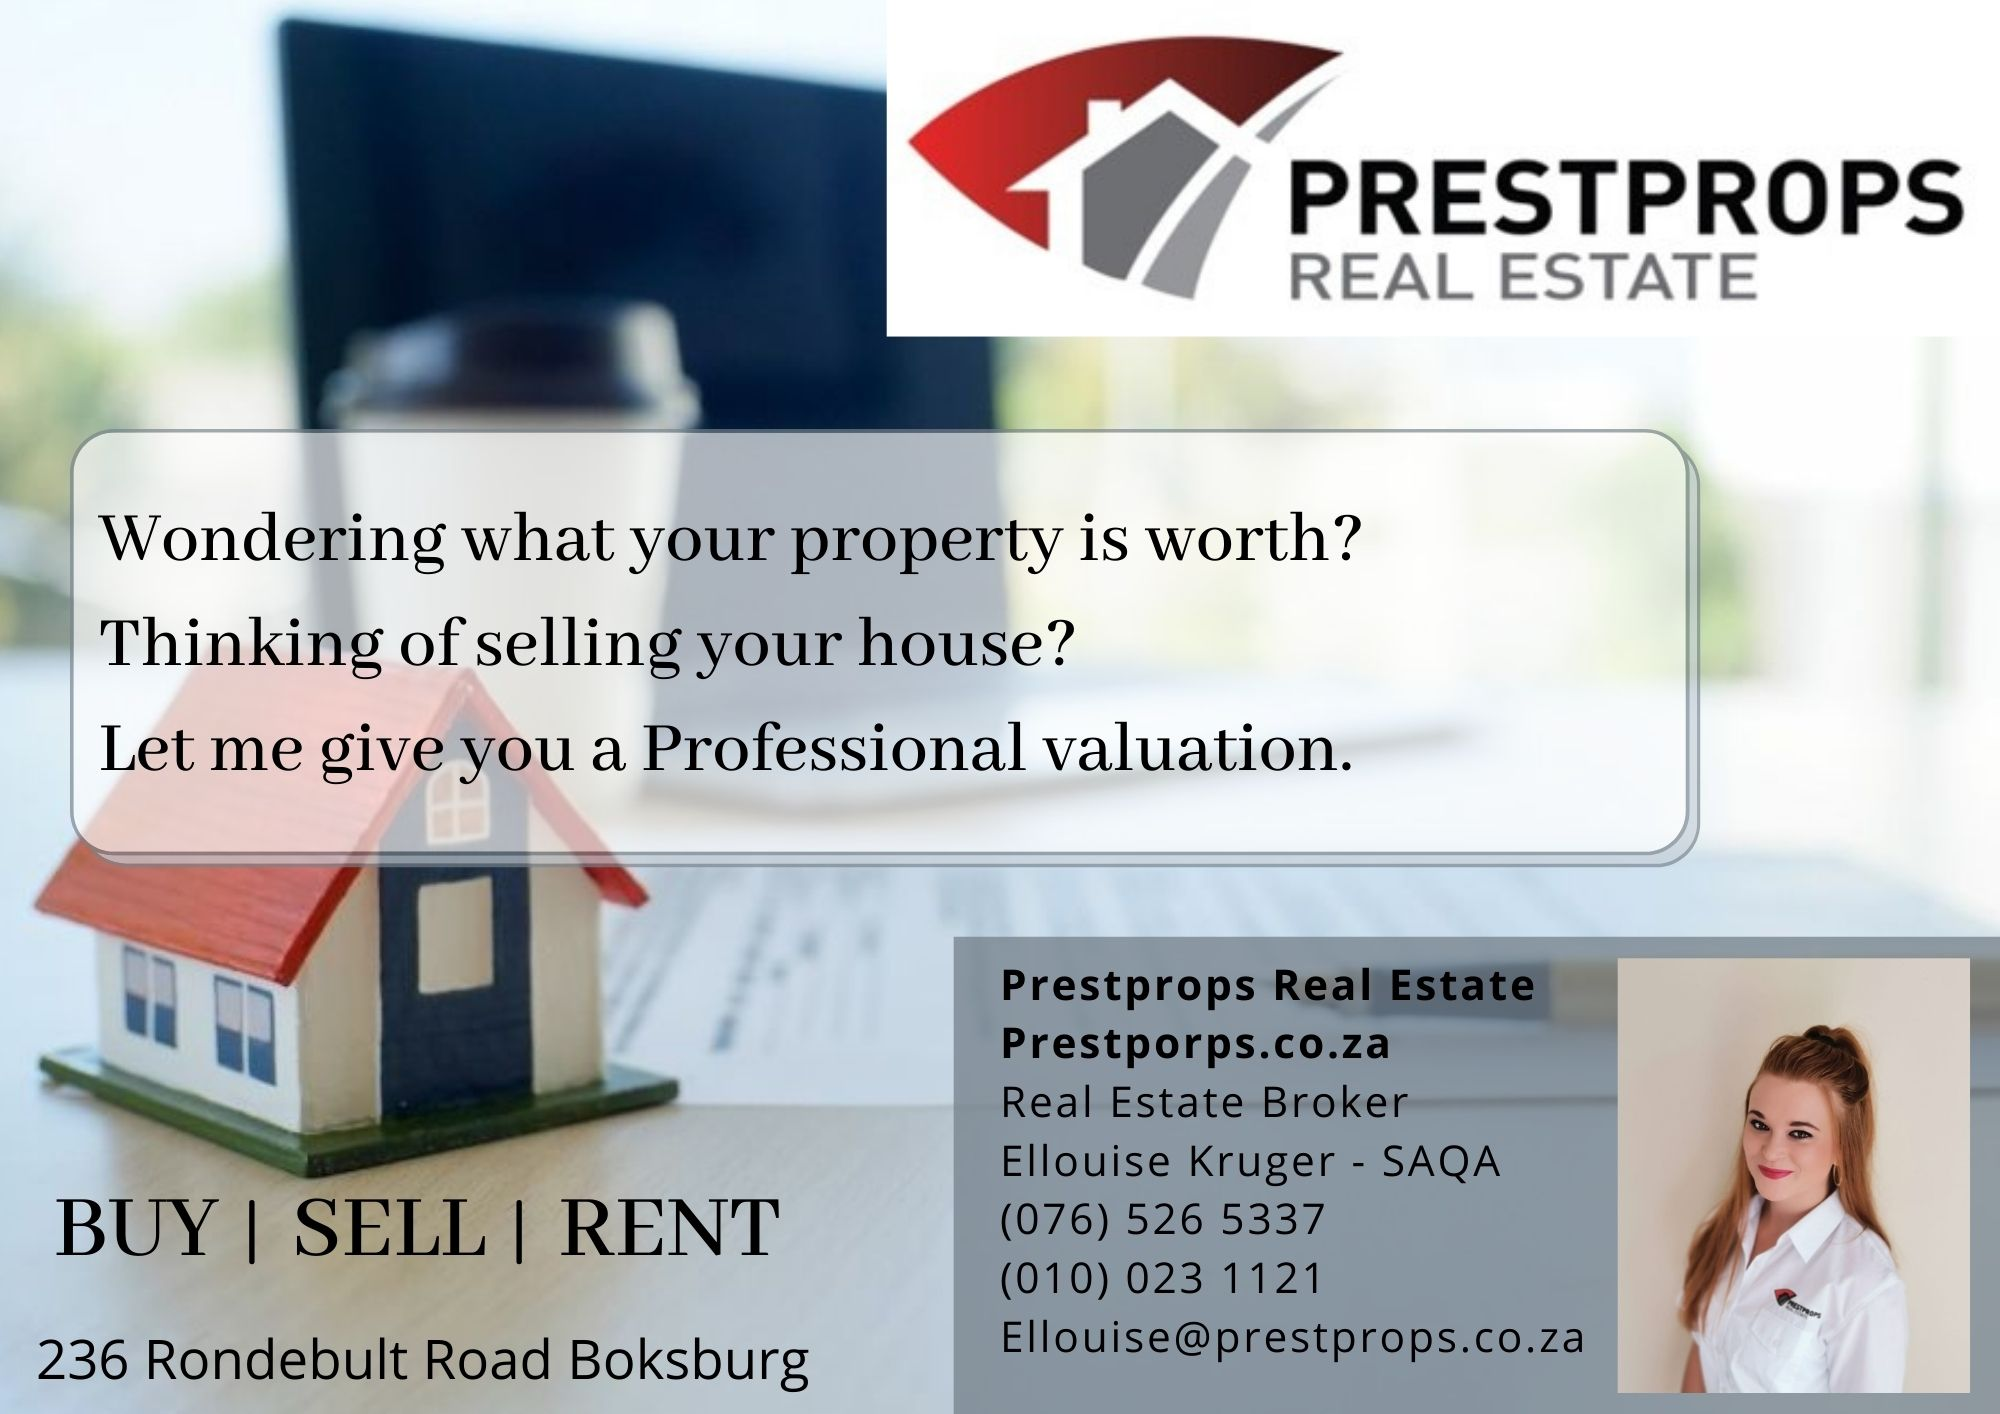 Contact us today - 076 526 5337 Or 010 023 1121